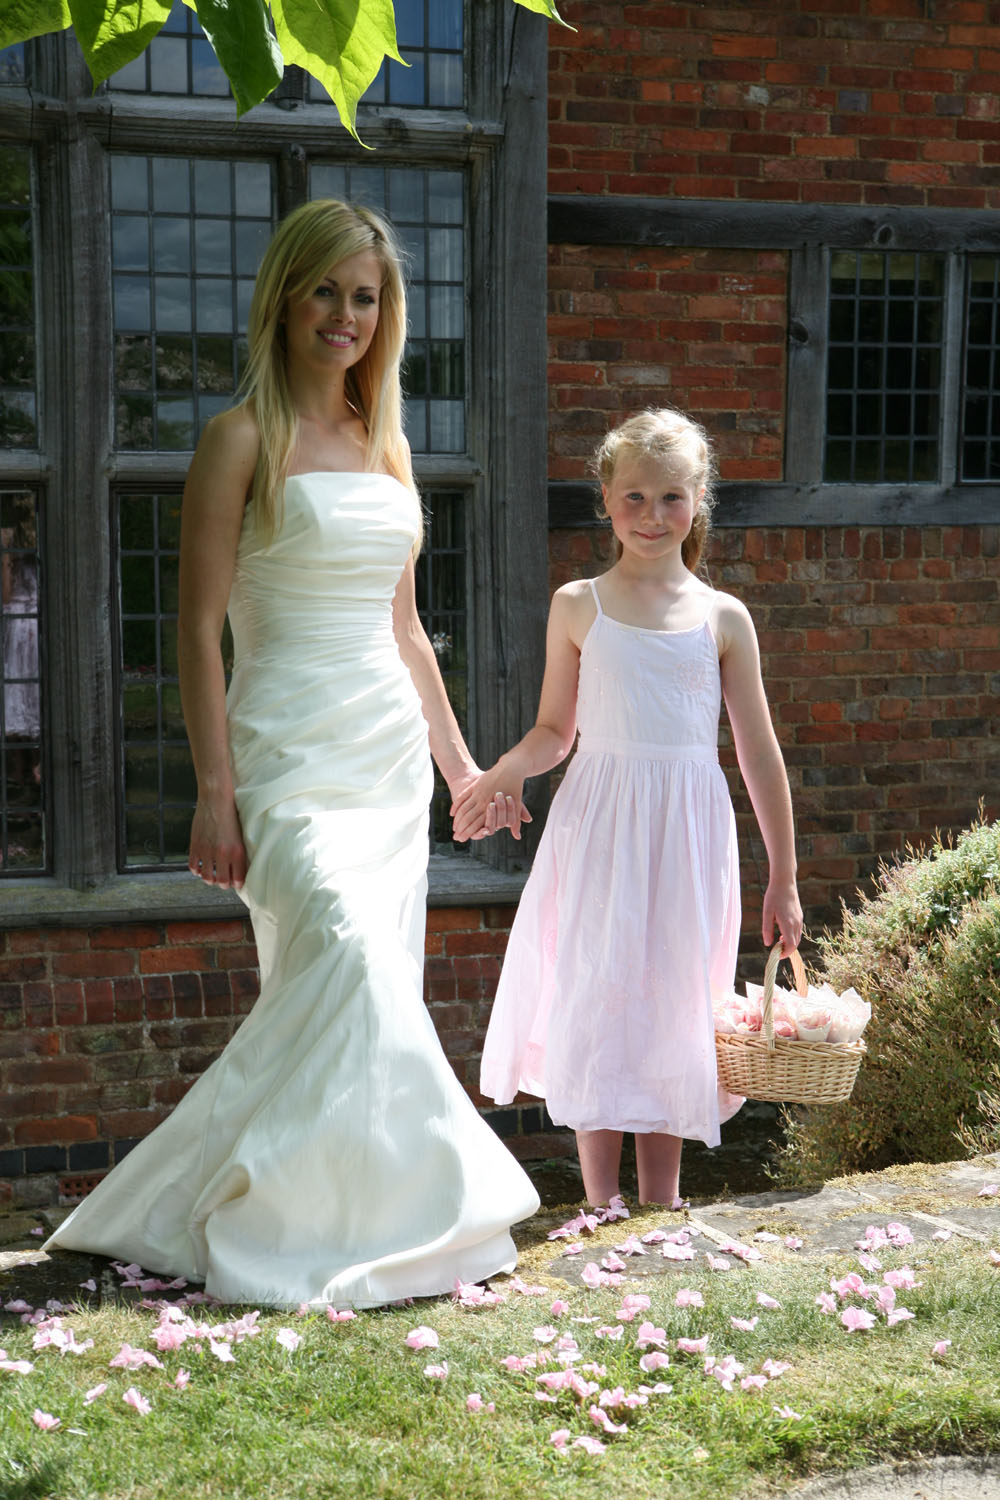 Flower petals - wedding aisles and petal pathways: Bride and flower girl